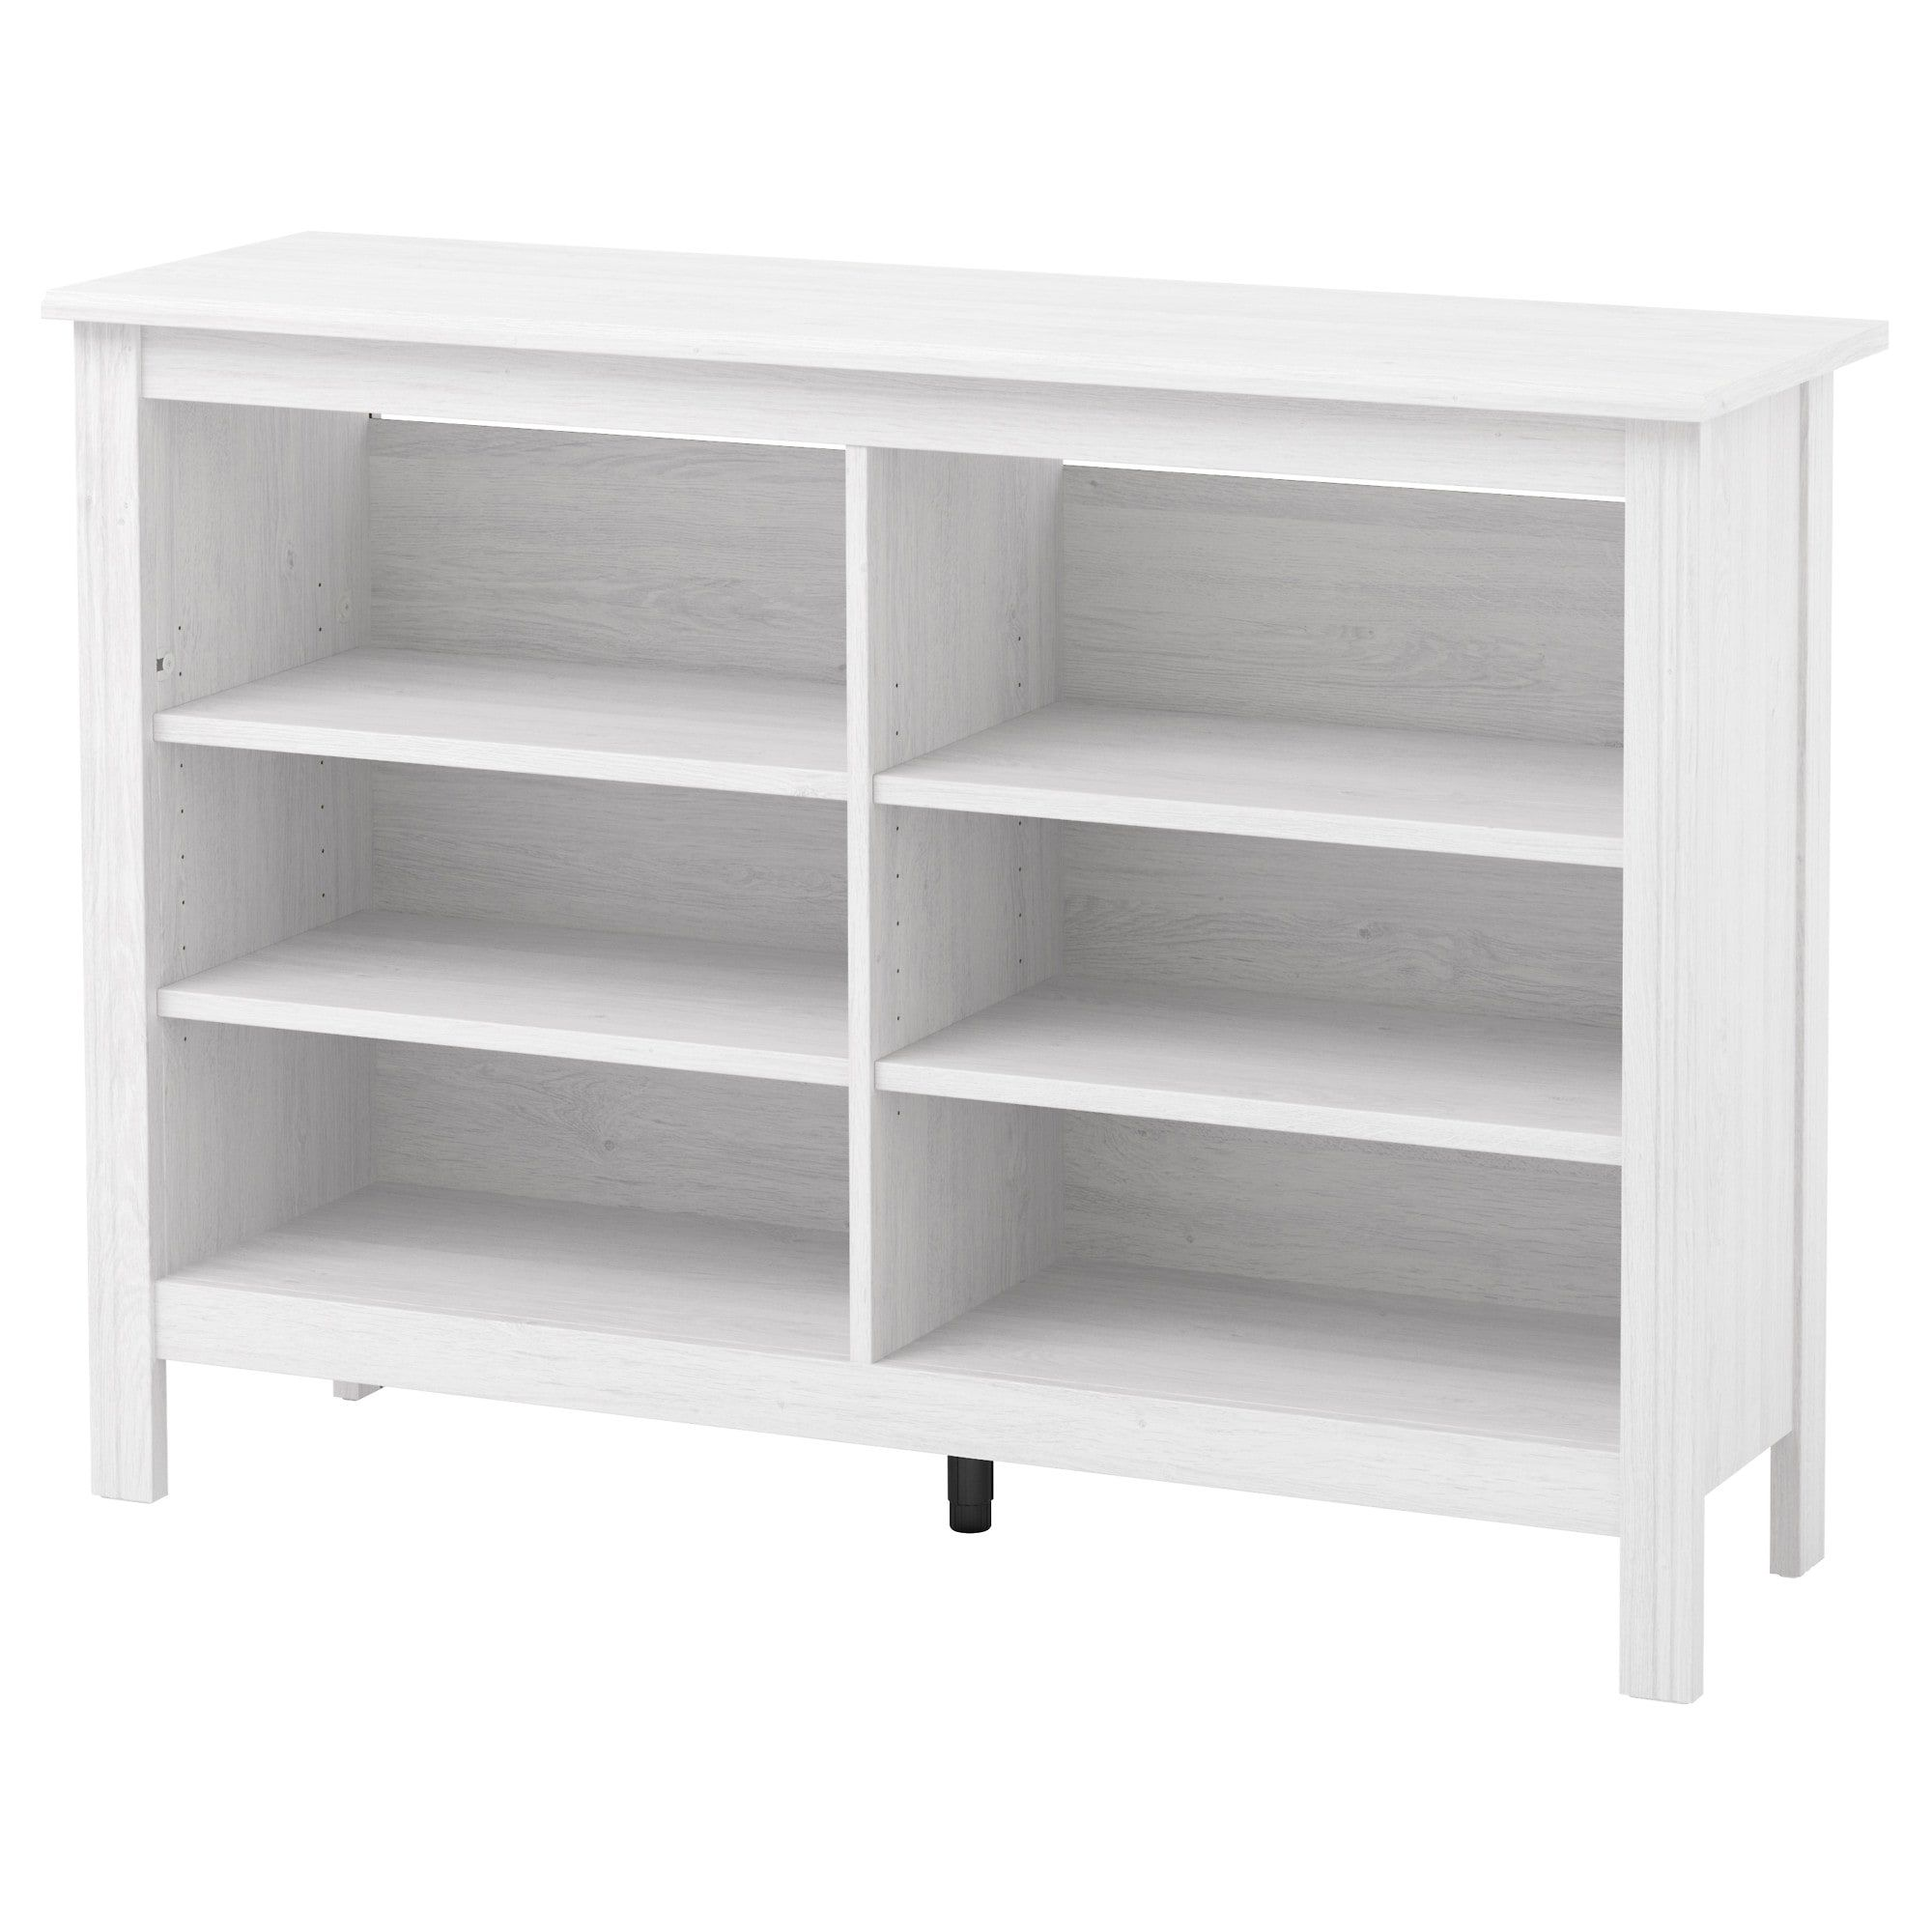 Brusali Tv Unit  White  Ikea